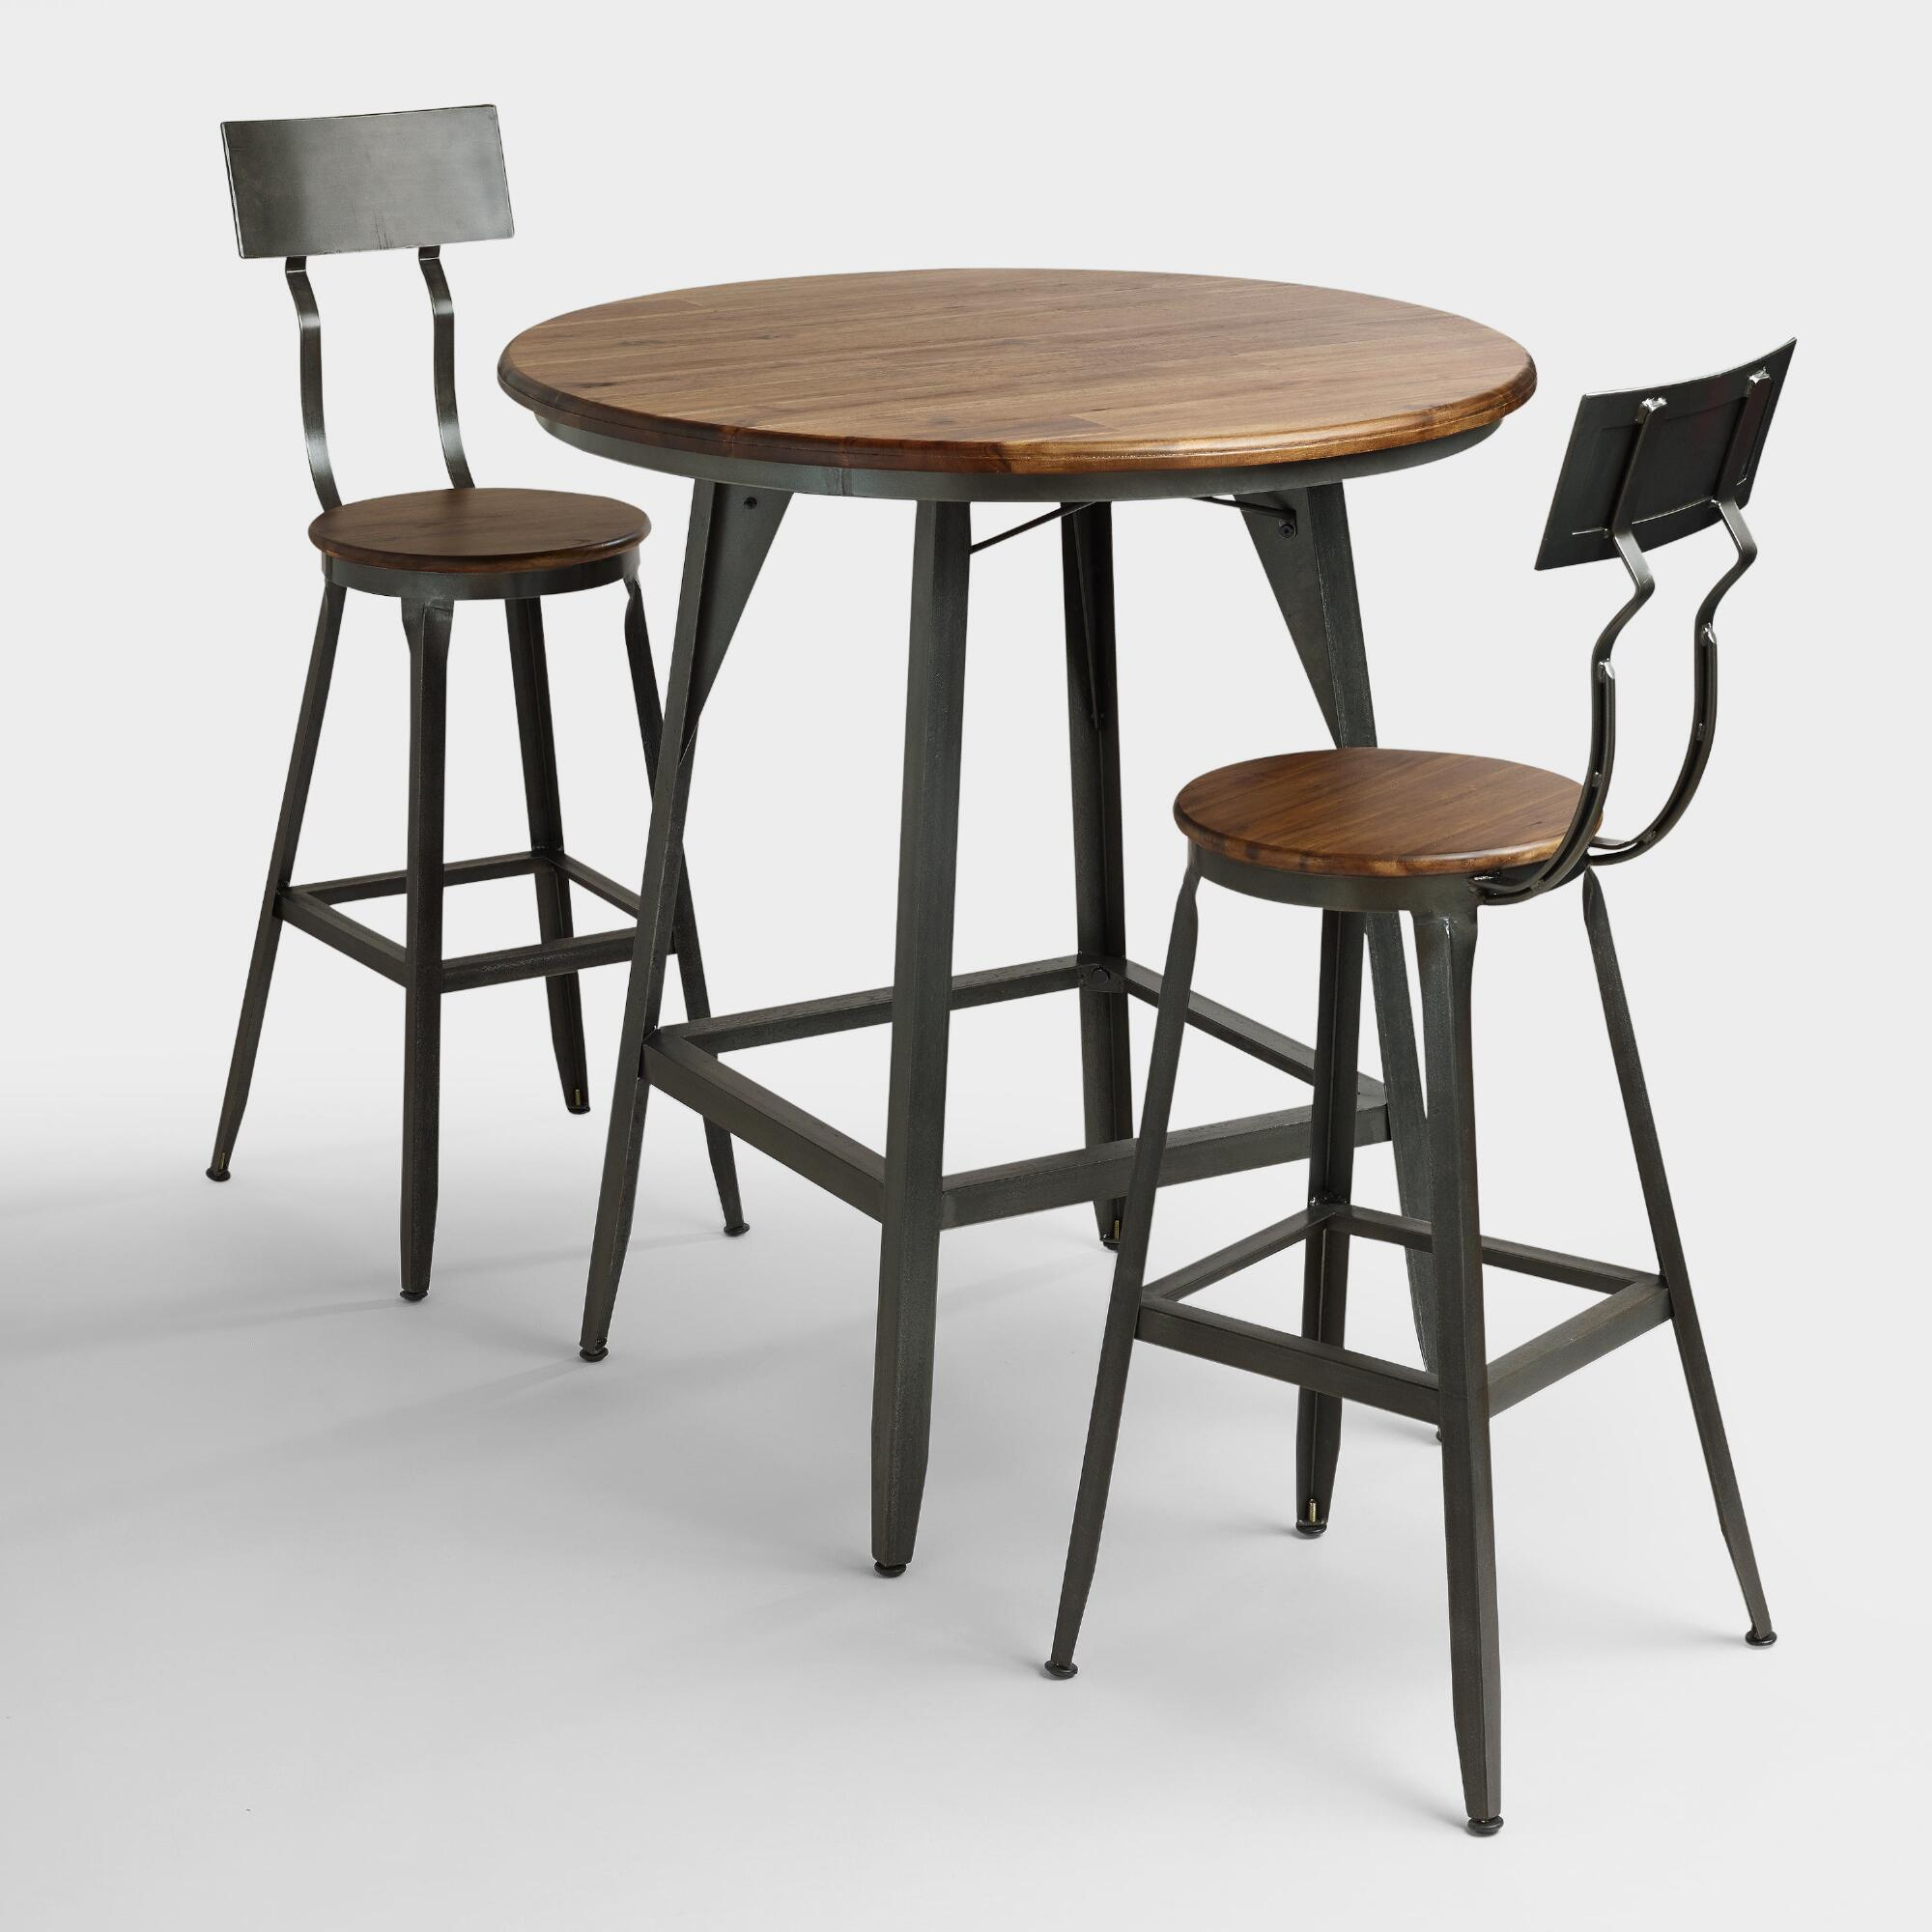 0e4f6b3b71599aa7 further Vig Vglet08 Crk besides Style Mix Wood Tables White Chairs additionally Industrial Desk With Oak Top And Steel likewise Man On A Chair Before Suicide With A Hanging Rope 44003. on x base chair